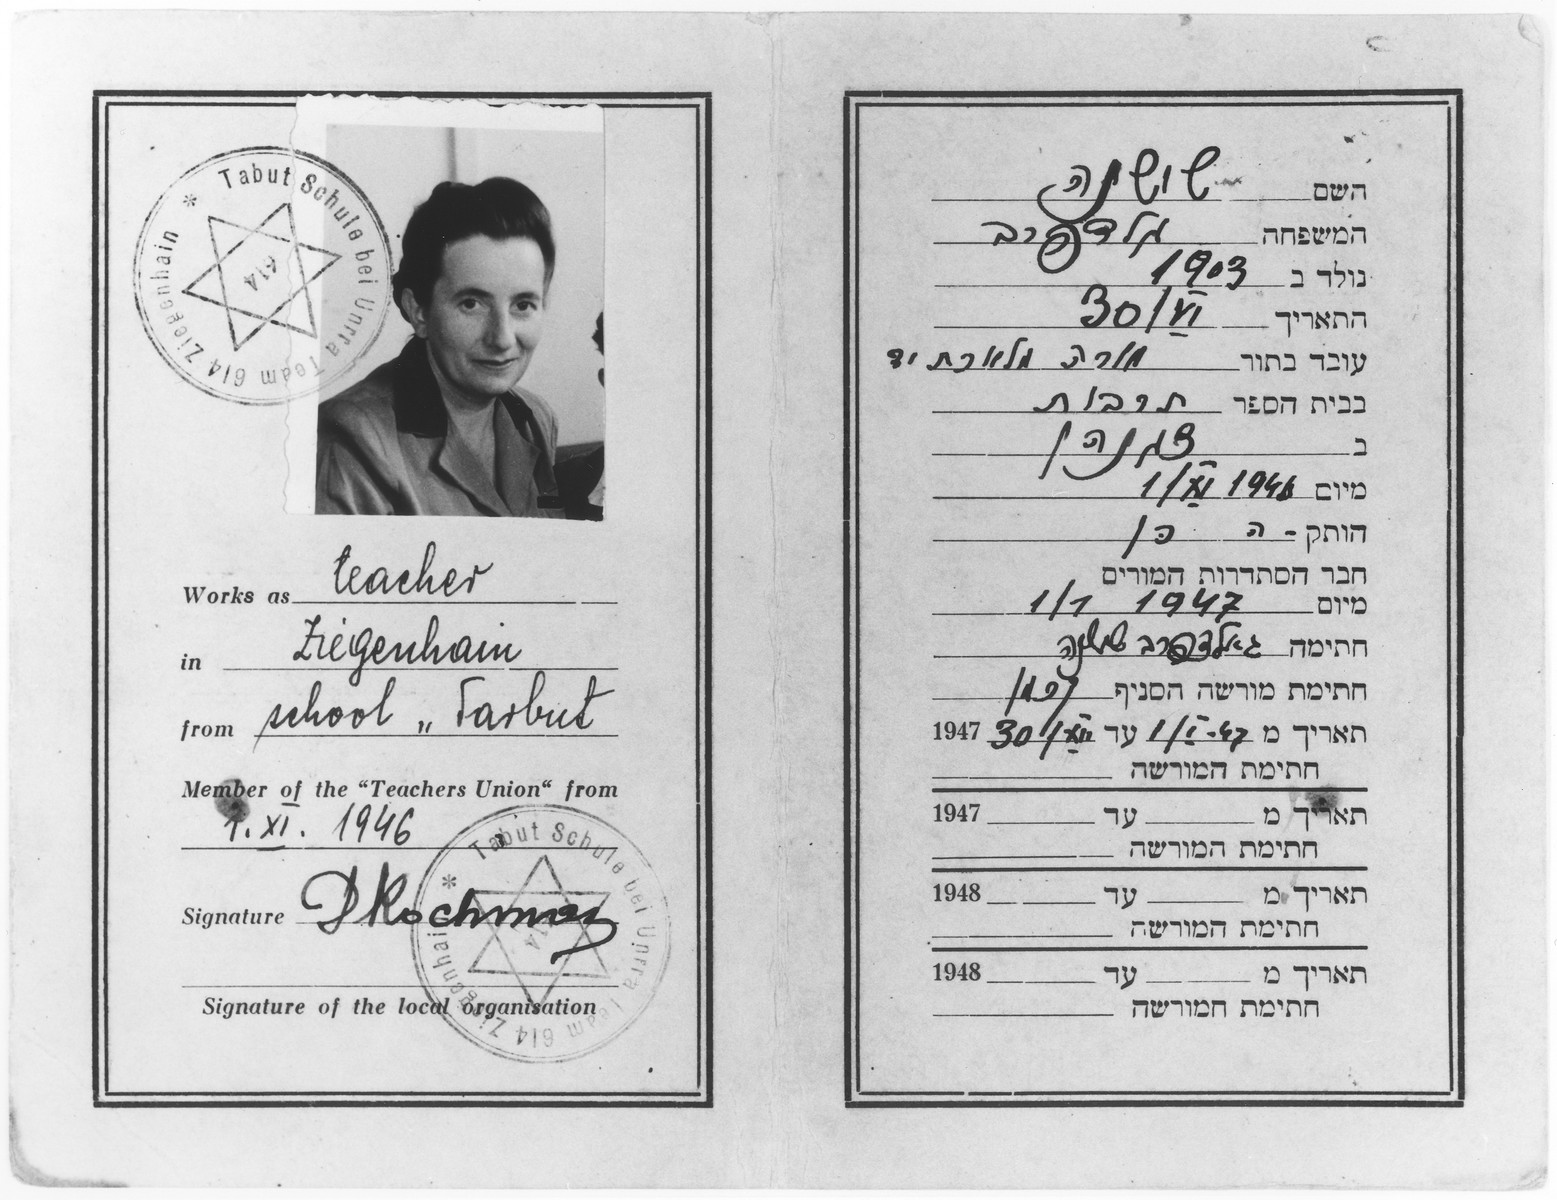 Membership card certifying that Roza (Shoshana) Goldfarb is a teacher at the Ziegenhain Hebrew Tarbut school and a member of the Jewish Teachers Union in Germany.